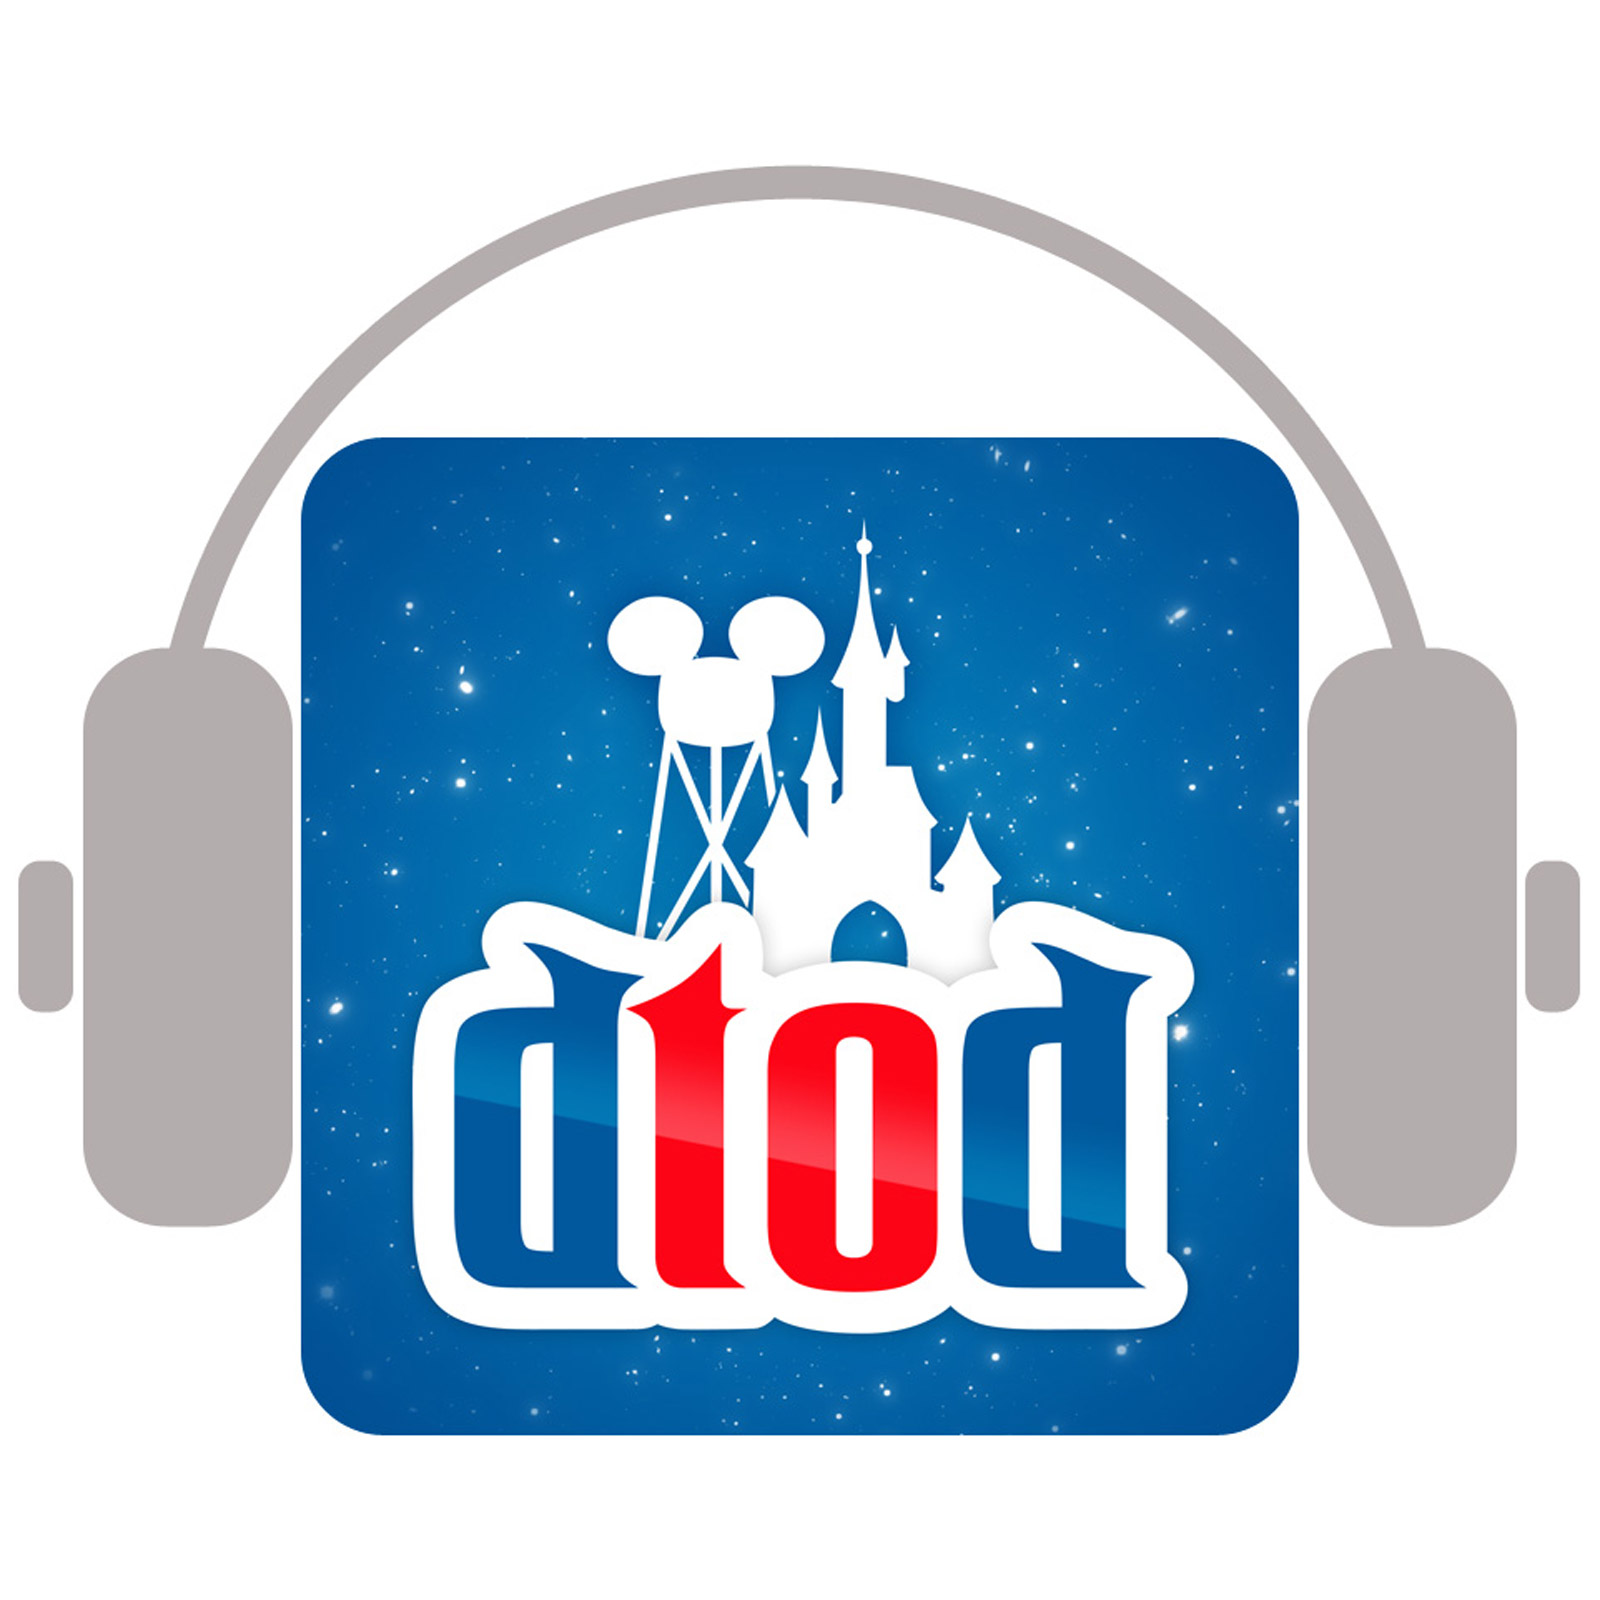 Episode 58: The Rumours Awaken